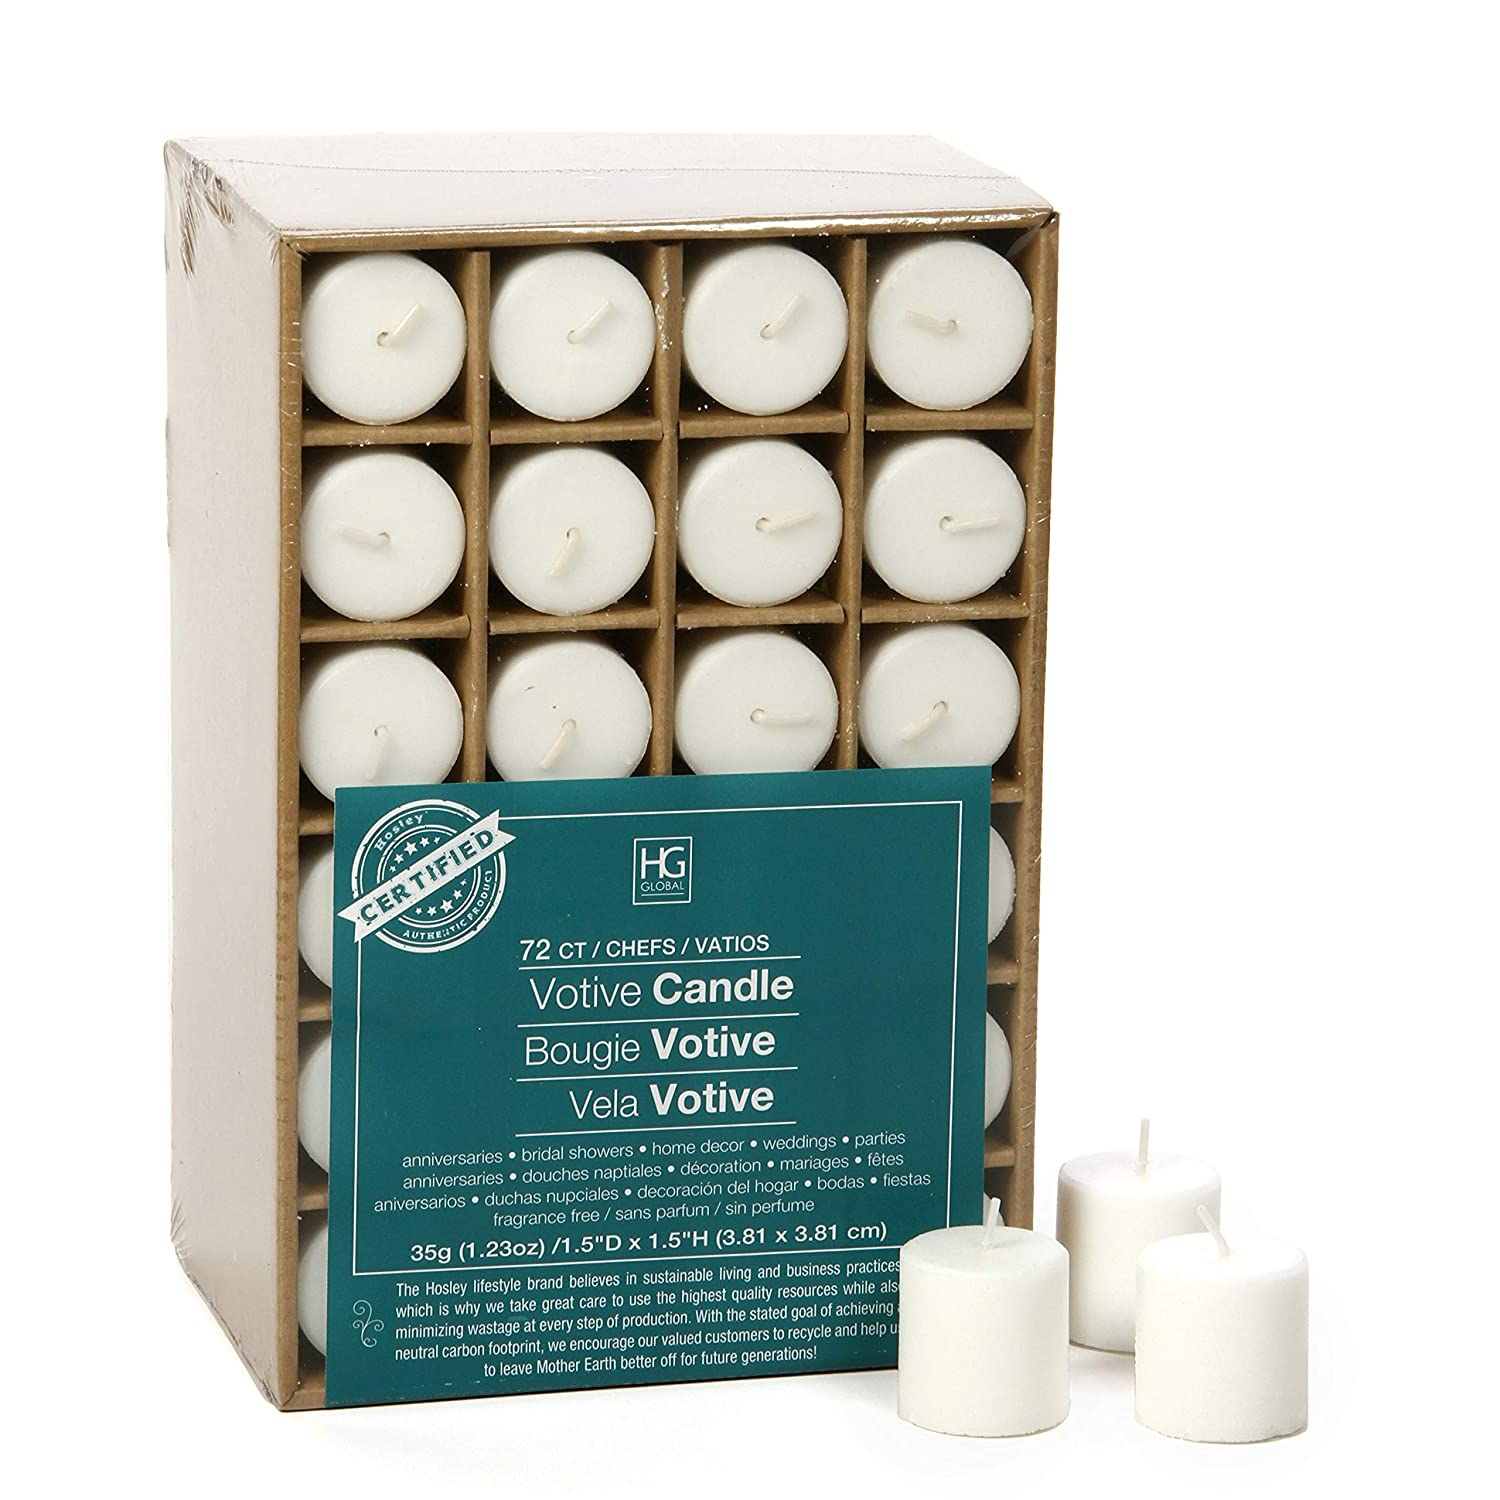 Hosley Set of 72 Unscented White Votive Candles up to 10-Hours. Bulk Buy. Wax Blend. Ideal Weddings, Birthday, Aromatherapy, Party, Candle Gardens O2 HG Global FBA-G08896ON-1-EA